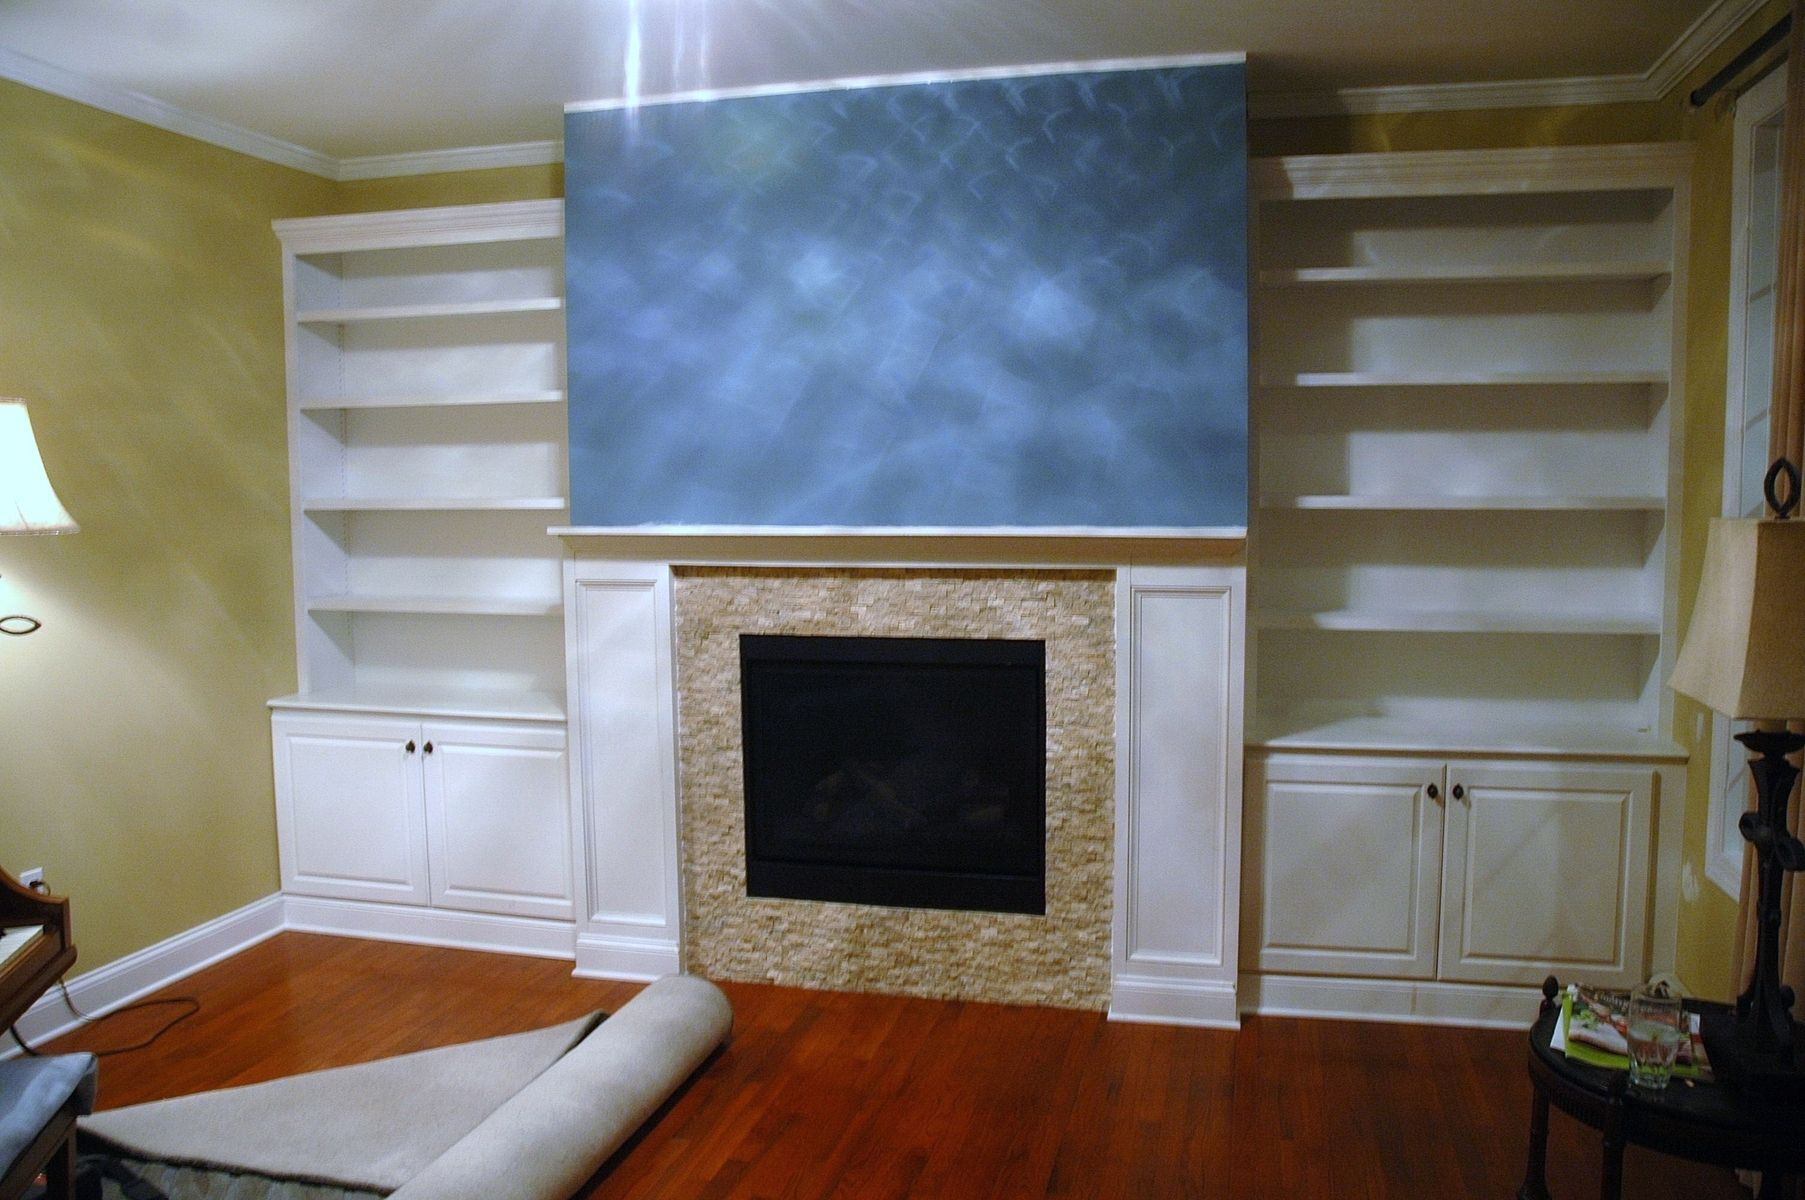 handmade built in bookcases base cabinets and fireplace surround